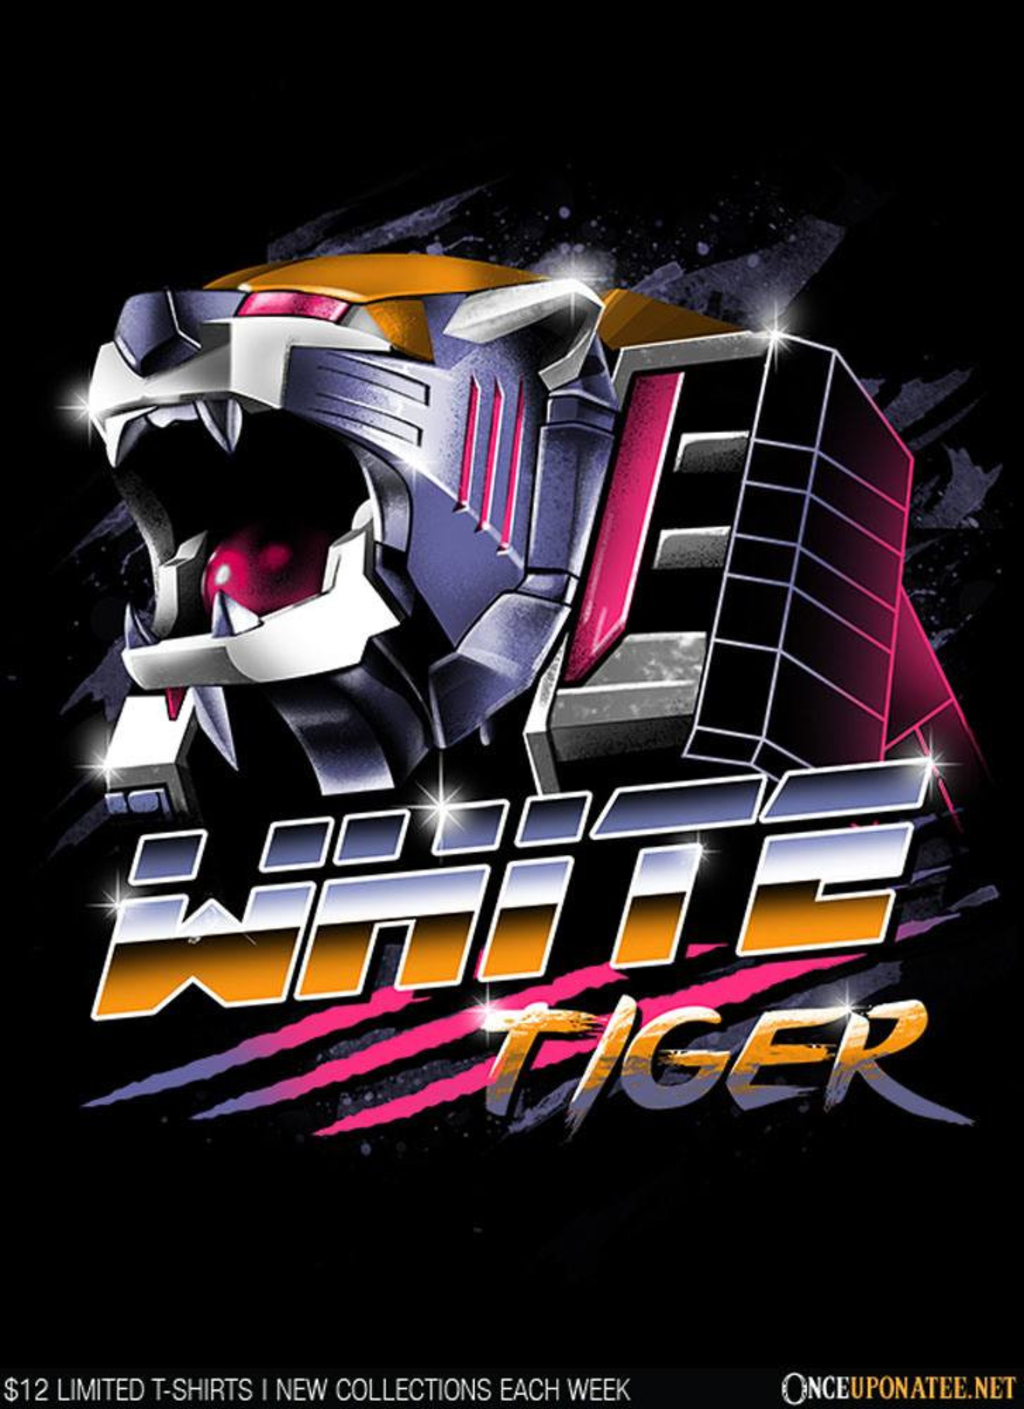 Once Upon a Tee: White Tiger